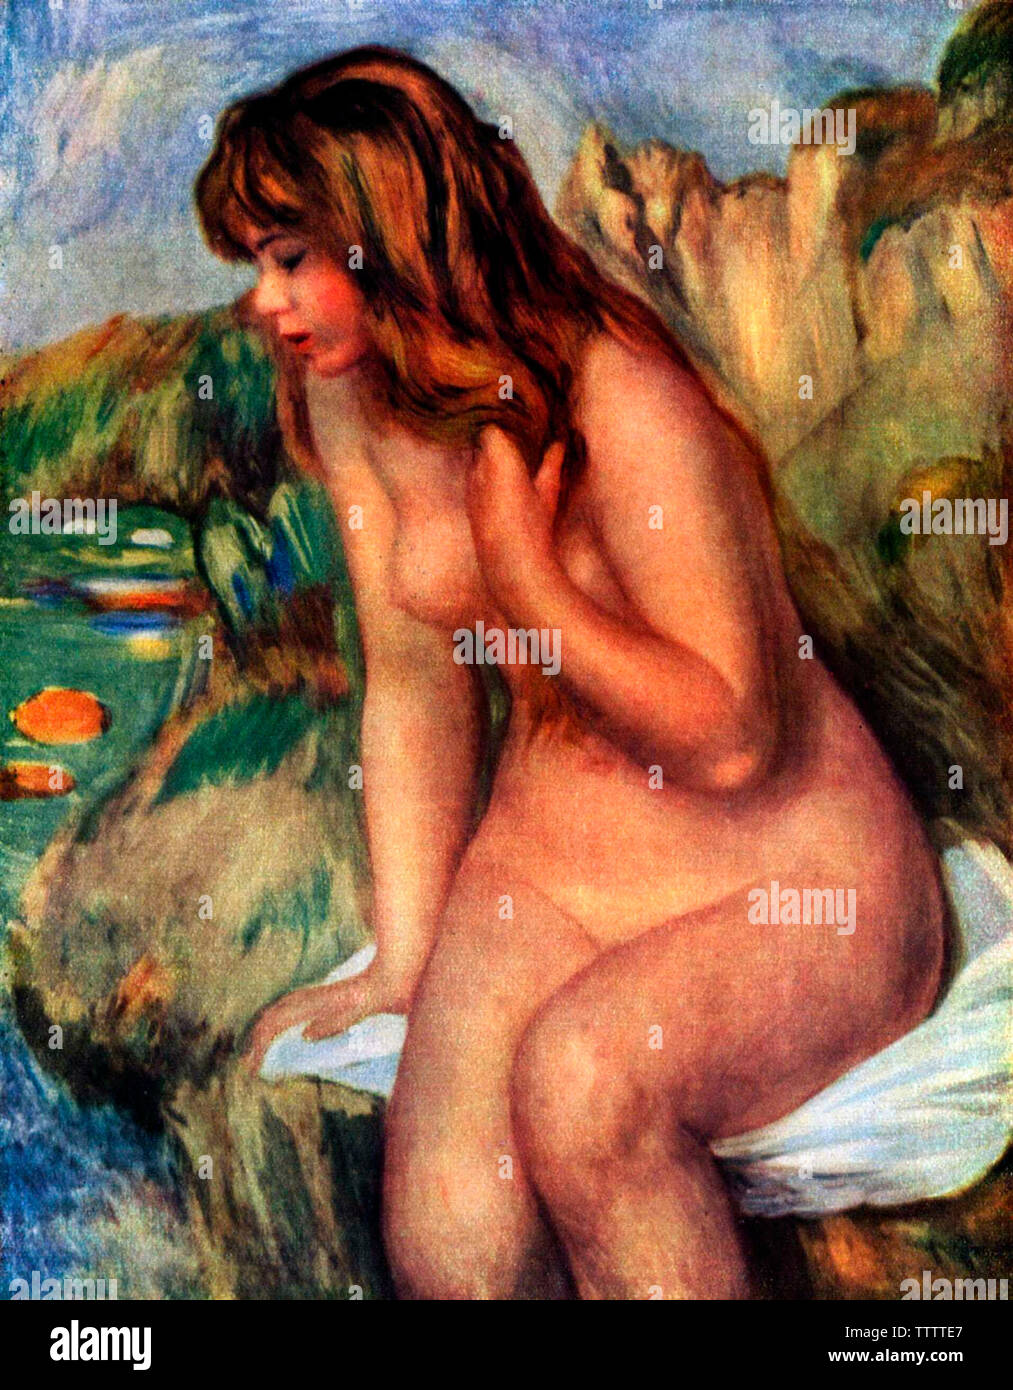 Bather sitting on the rock - Pierre-Auguste Renoir, 1892 - Stock Image